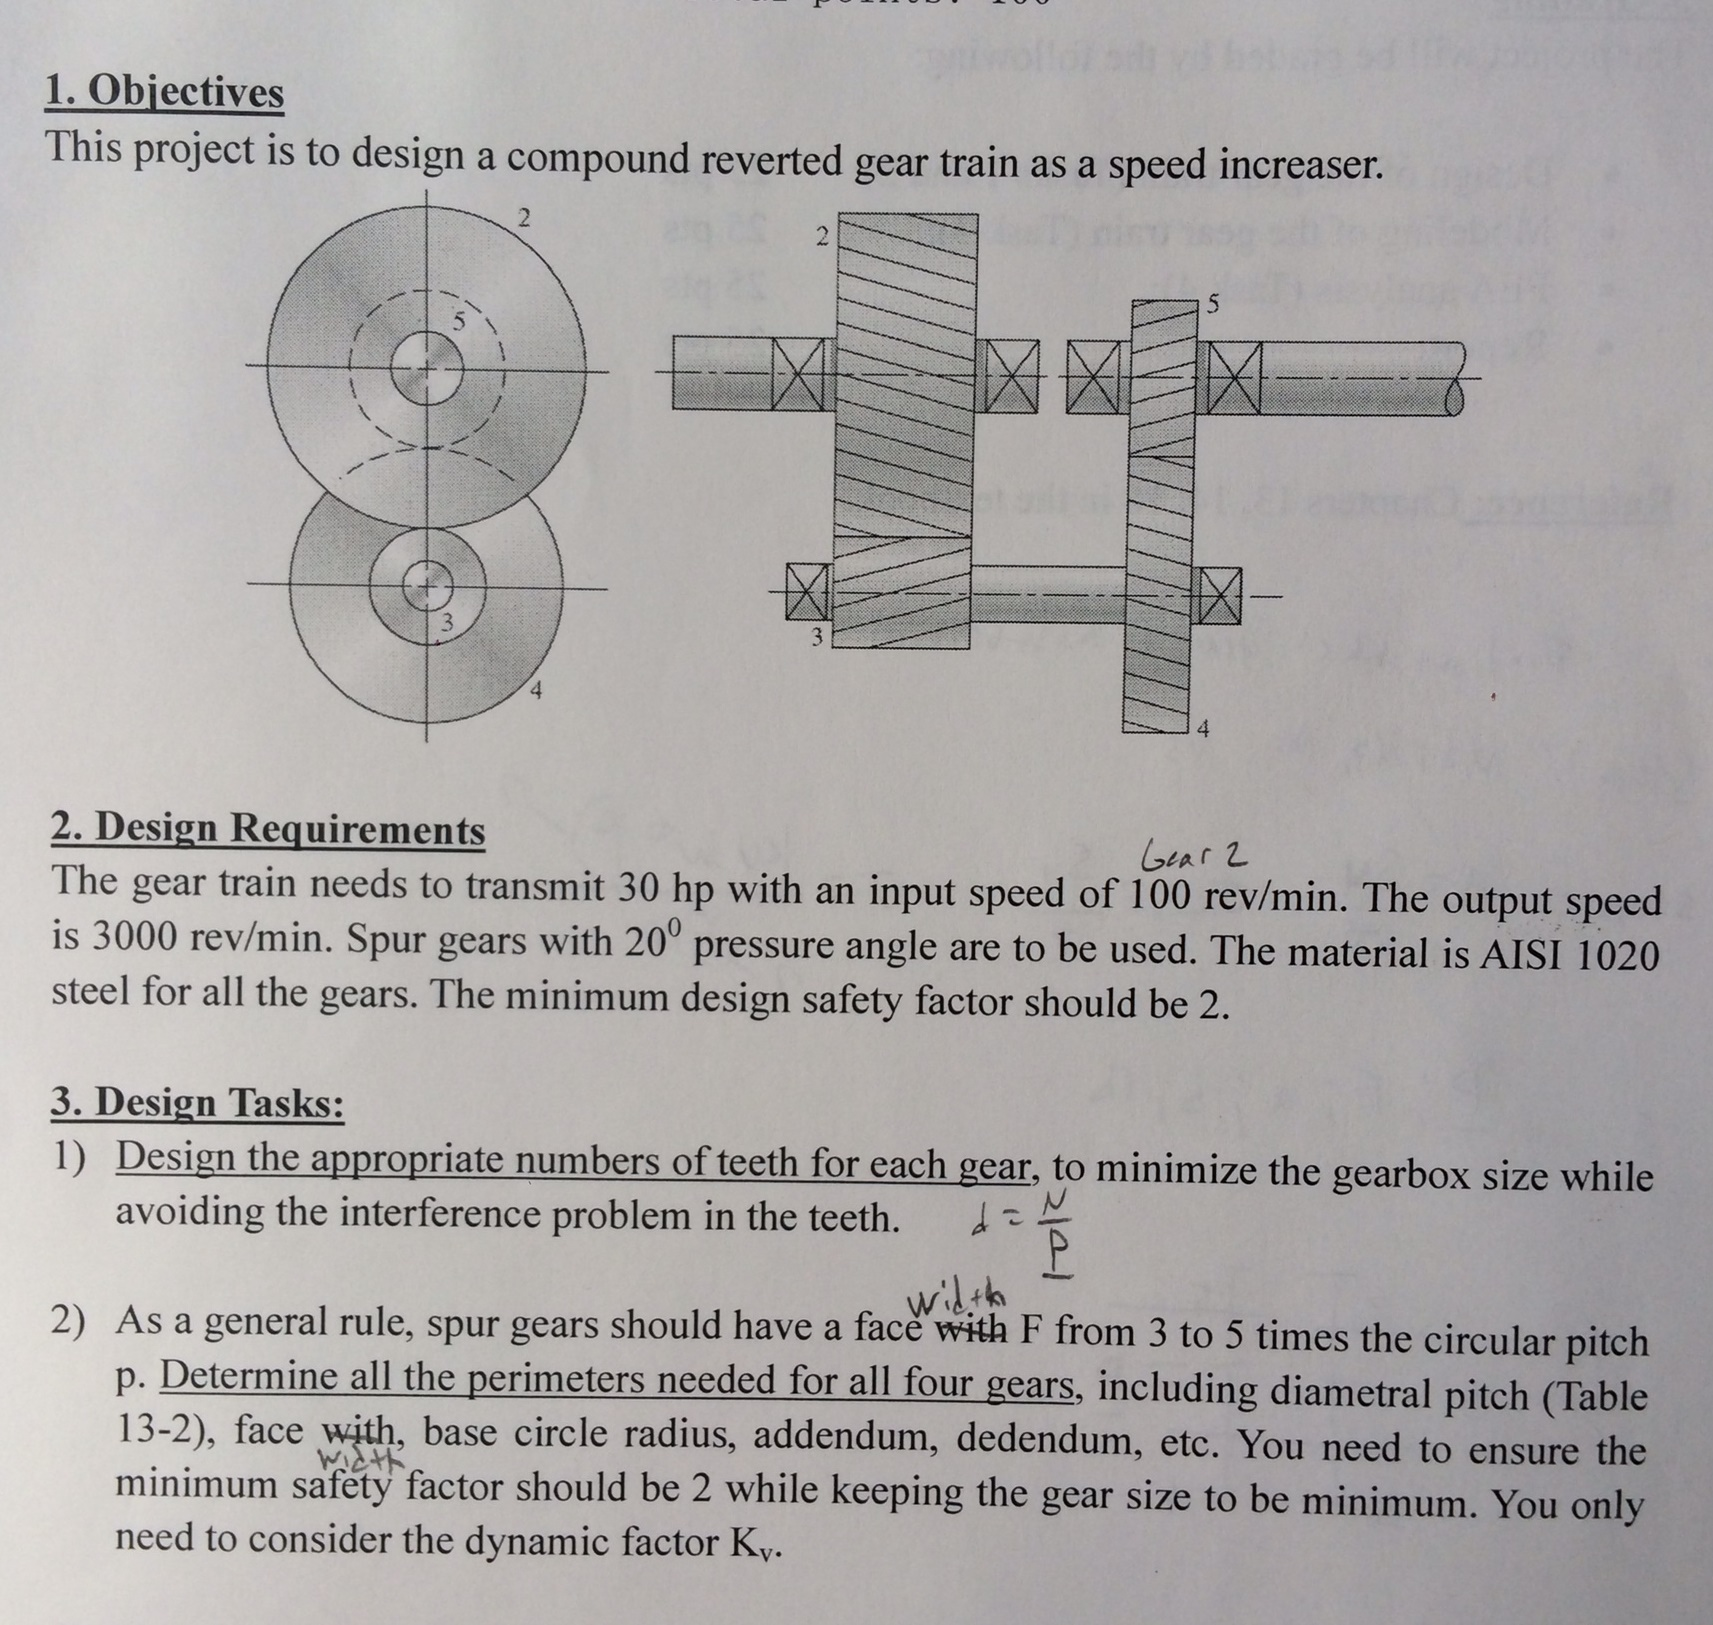 https://www chegg com/homework-help/questions-and-answers/find-gear-critical-next-n2-n3-n4-n5-next-n-sy-sigma-sigma-max-sy-2-simga-kv-wt-p-fy-someti-q5820147